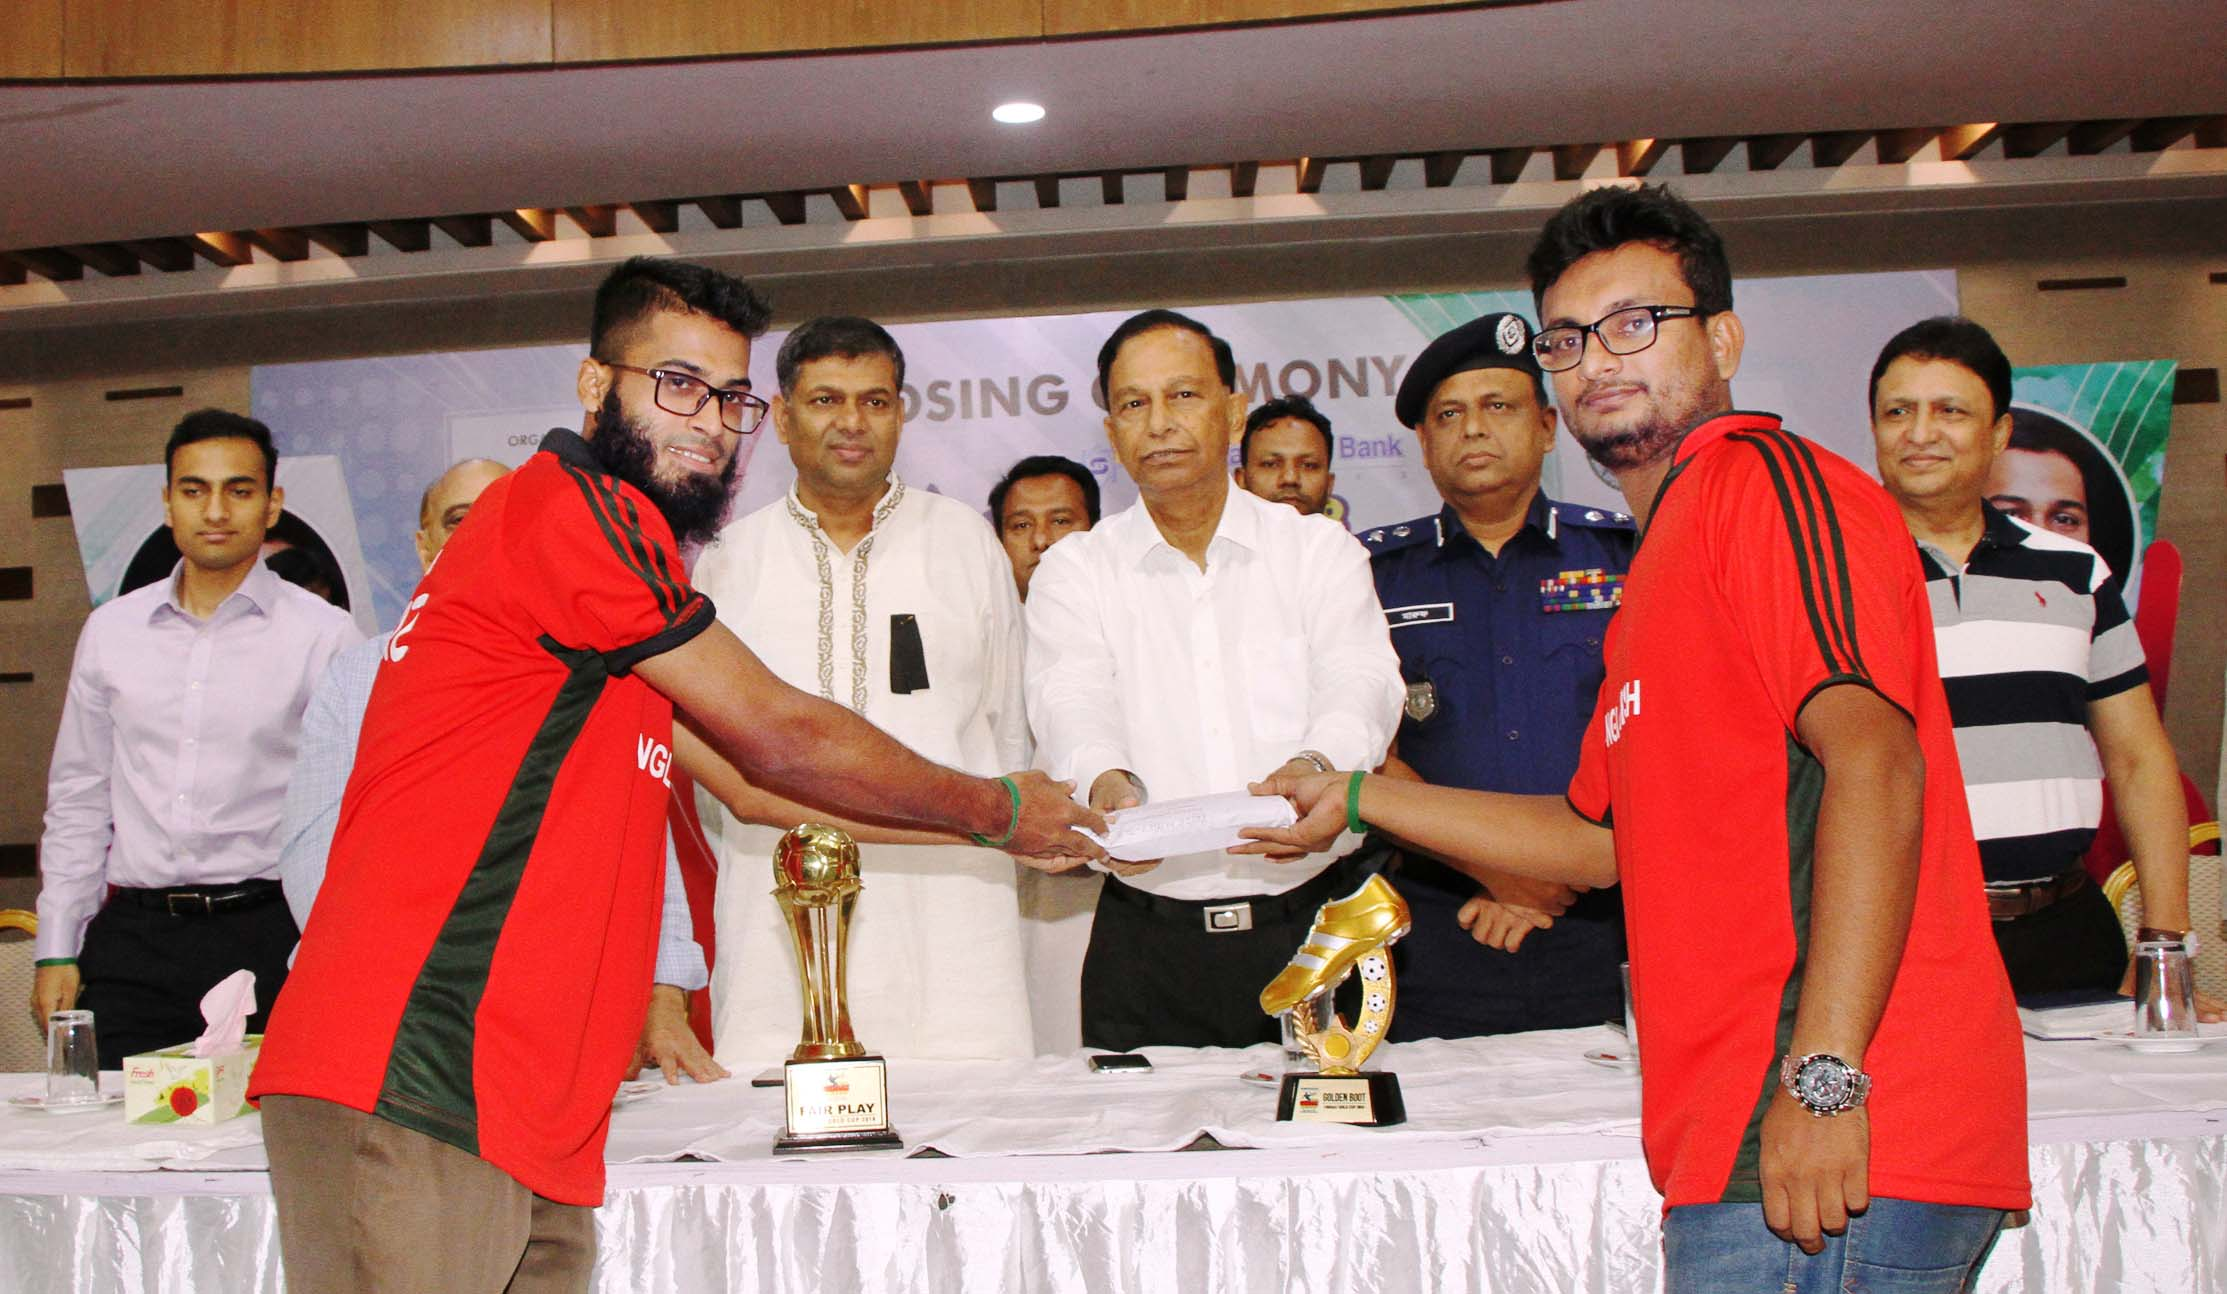 Secretary of Youth and Sports Affairs of Bangladesh Awami League Harun-ur-Rashid handing over a cash of Taka two lakh to the members of Fareast University Football team, the champions of the Shahjalal Islami Bank Faraaz Gold Cup Inter-University Football Tournament, at the Officers Club in the city on Saturday.